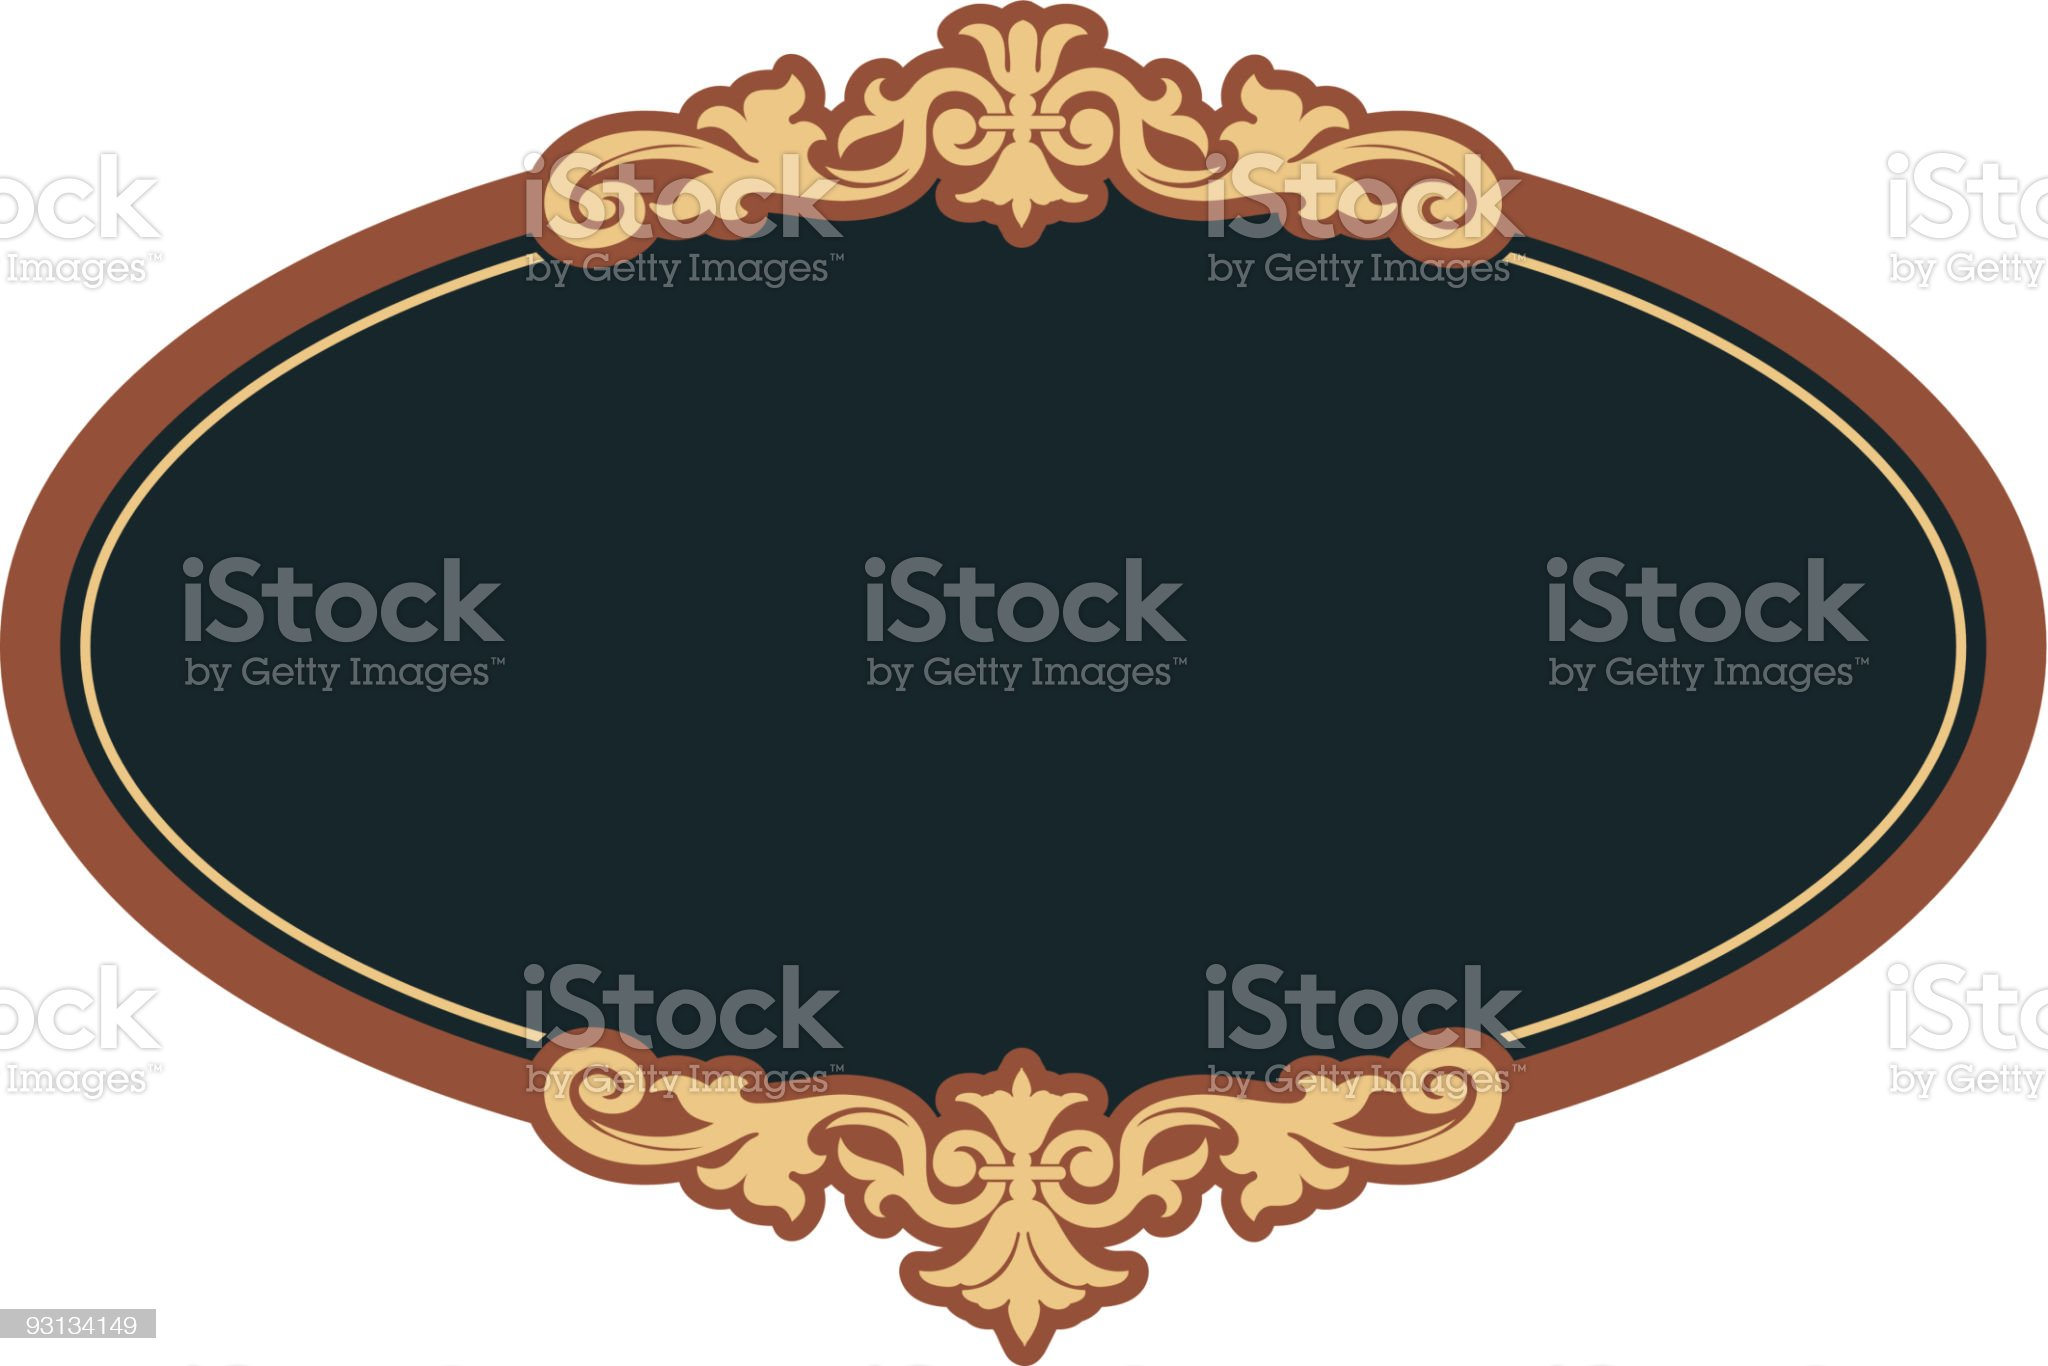 Oval-9-20-04 royalty-free stock vector art